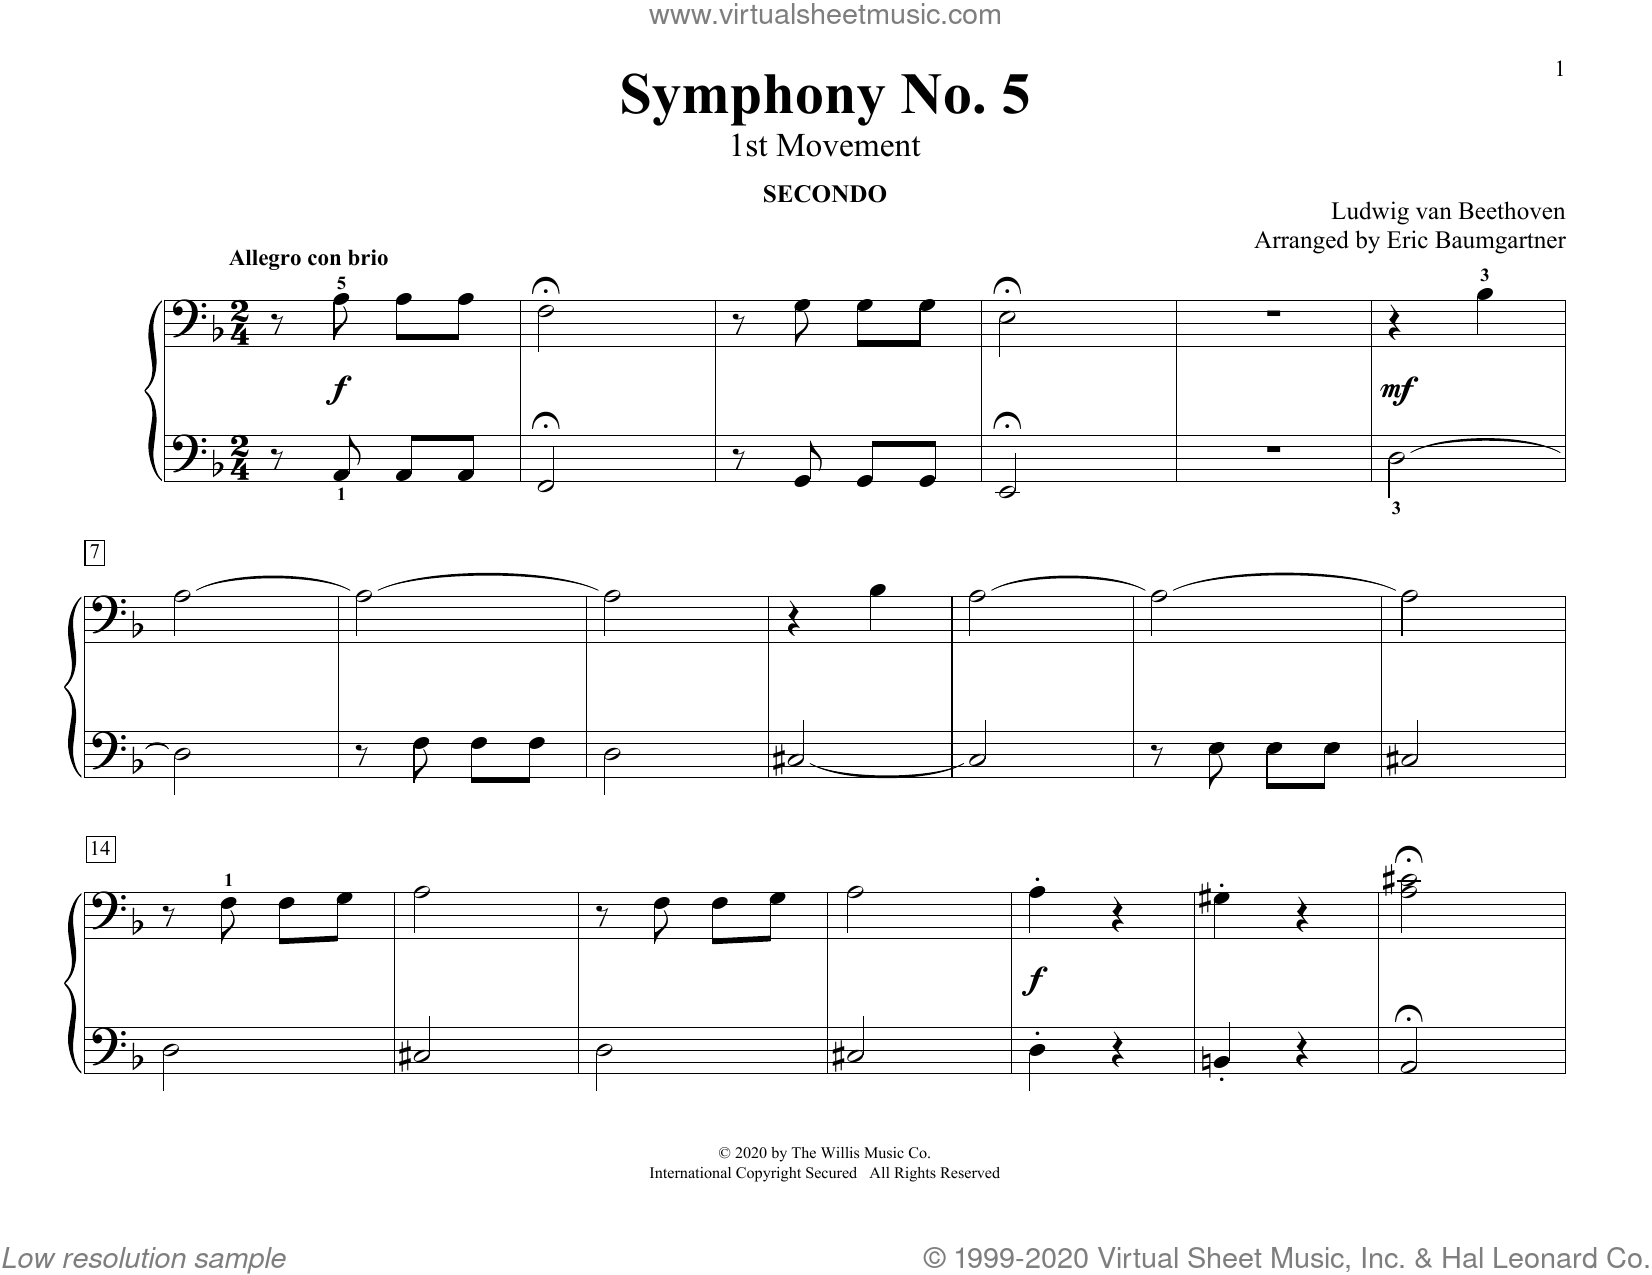 Symphony No. 5 (1st Movement) (arr. Eric Baumgartner) sheet music for piano four hands by Ludwig van Beethoven and Eric Baumgartner, classical score, intermediate skill level